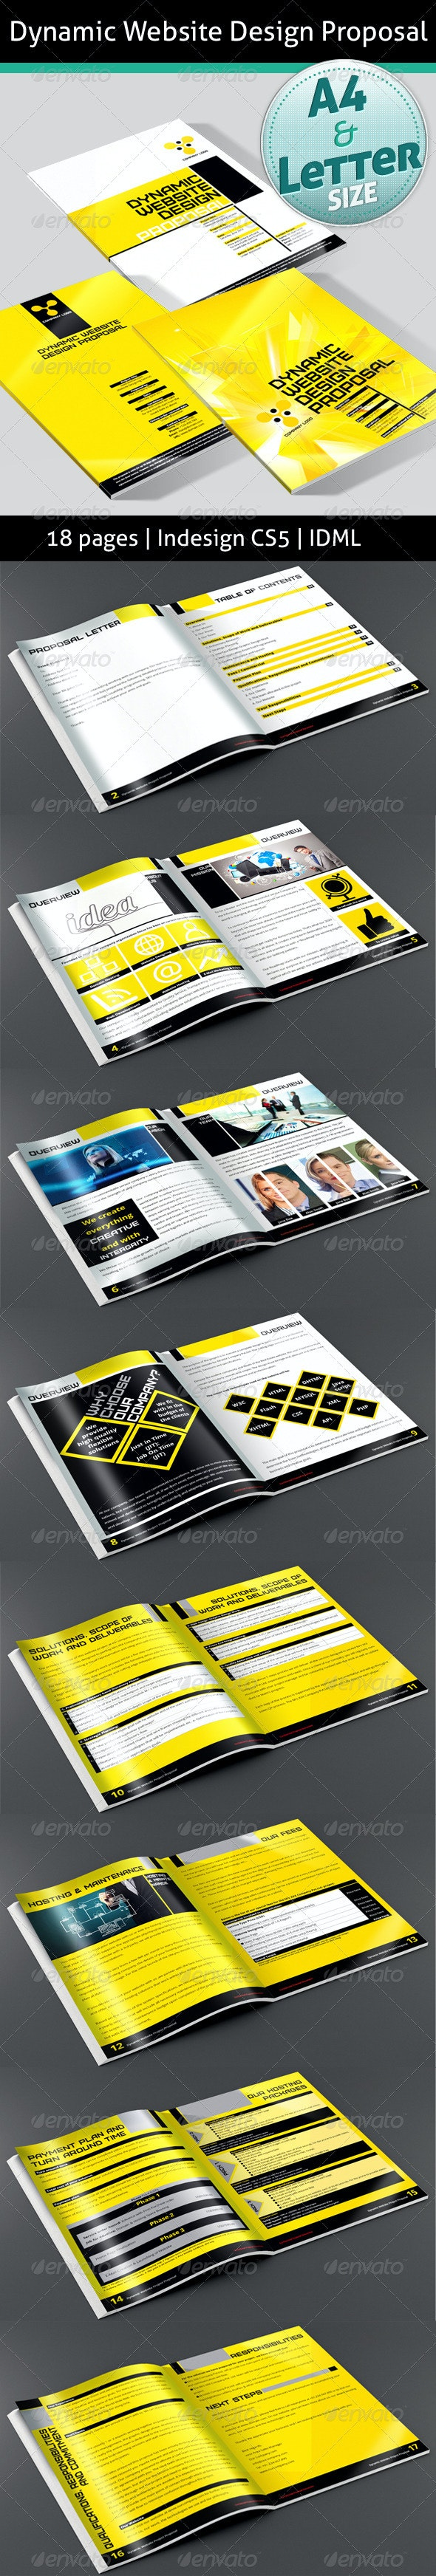 Dynamic Website Project Proposal - Proposals & Invoices Stationery